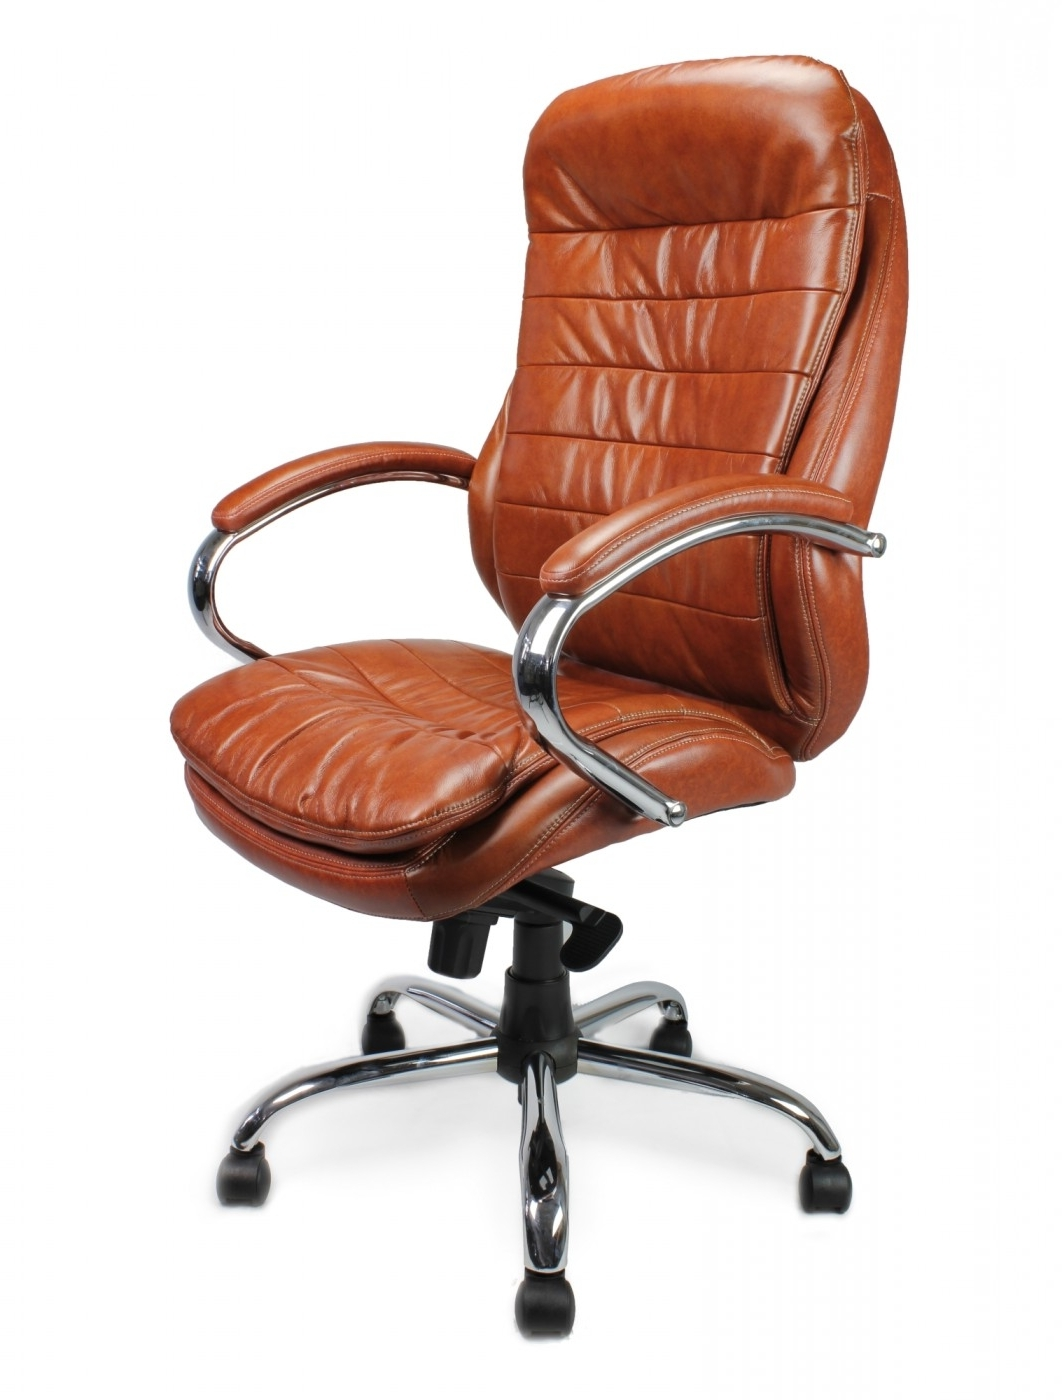 Chair : Leather And Wood Executive Office Chair Executive Leather Pertaining To Trendy Leather Wood Executive Office Chairs (View 14 of 20)